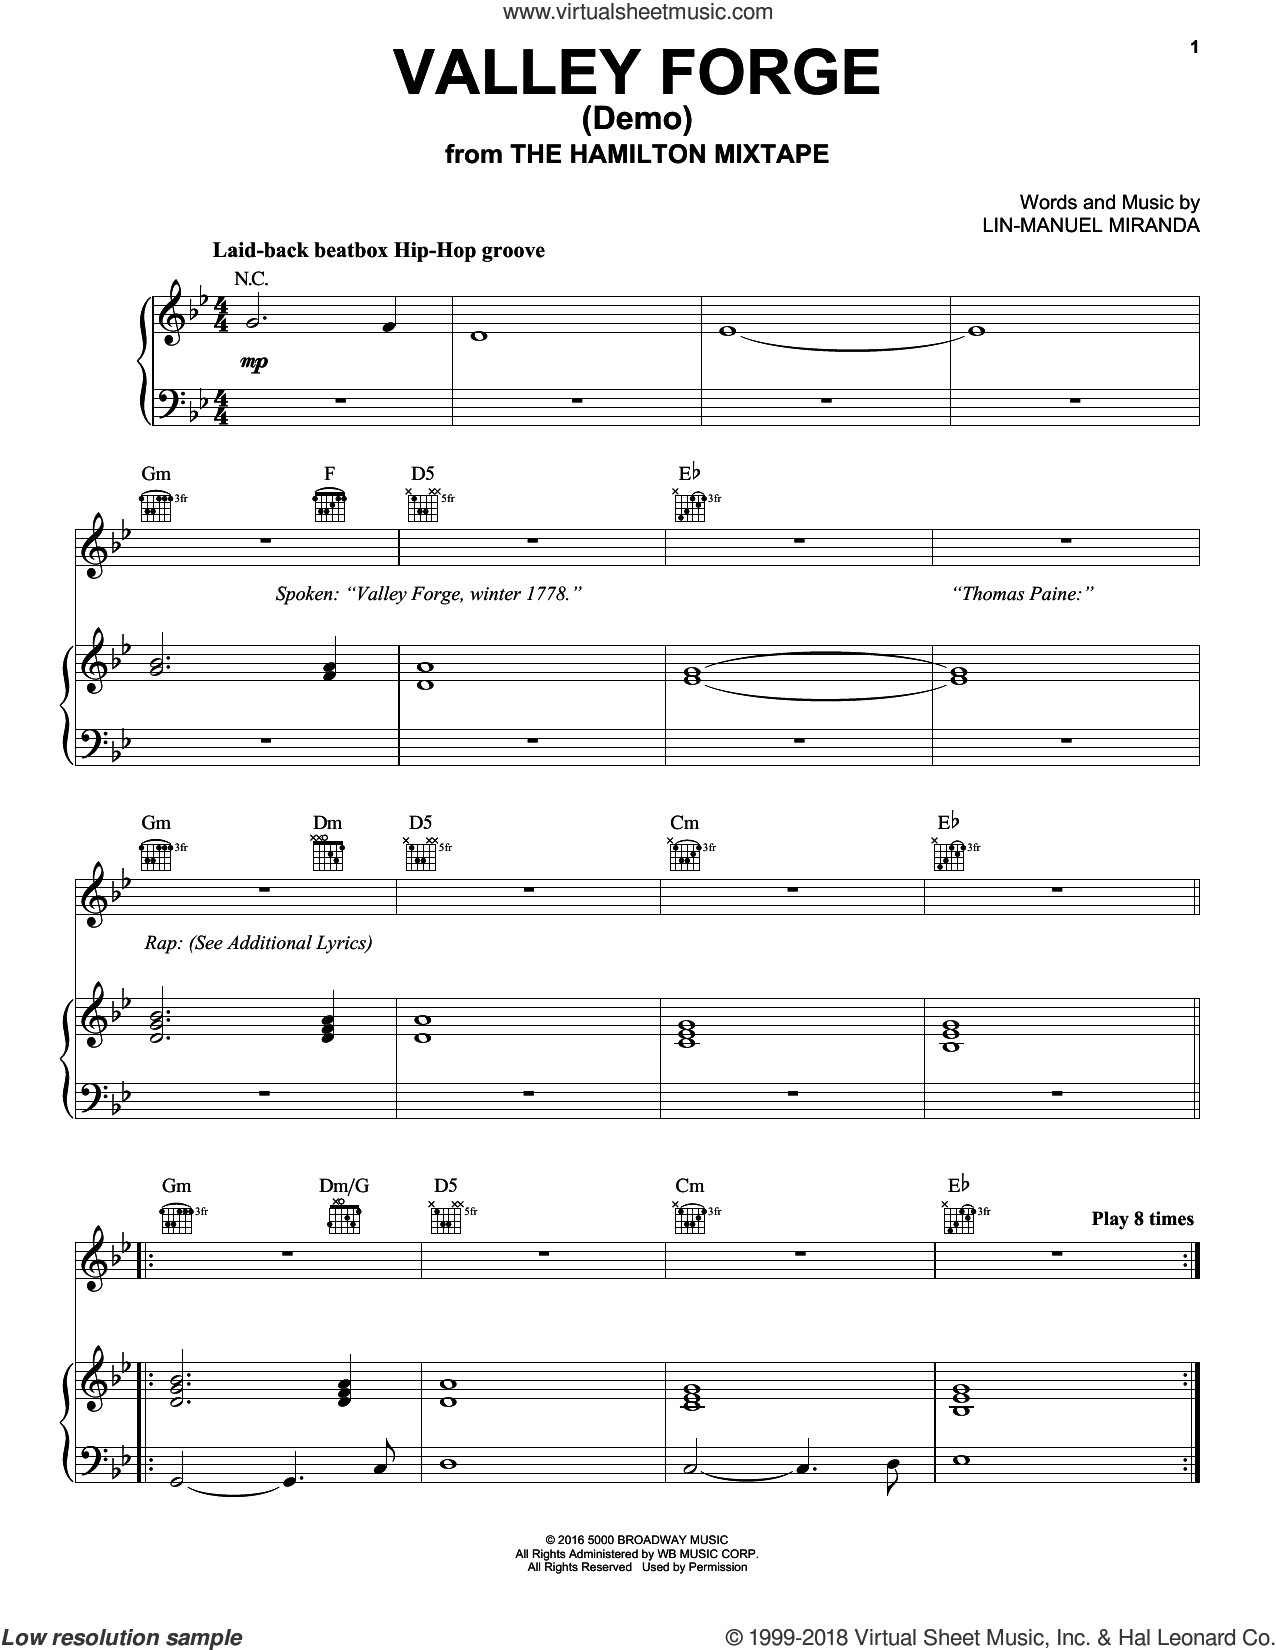 Valley Forge (Demo) (from The Hamilton Mixtape) sheet music for voice, piano or guitar by Lin-Manuel Miranda, intermediate skill level